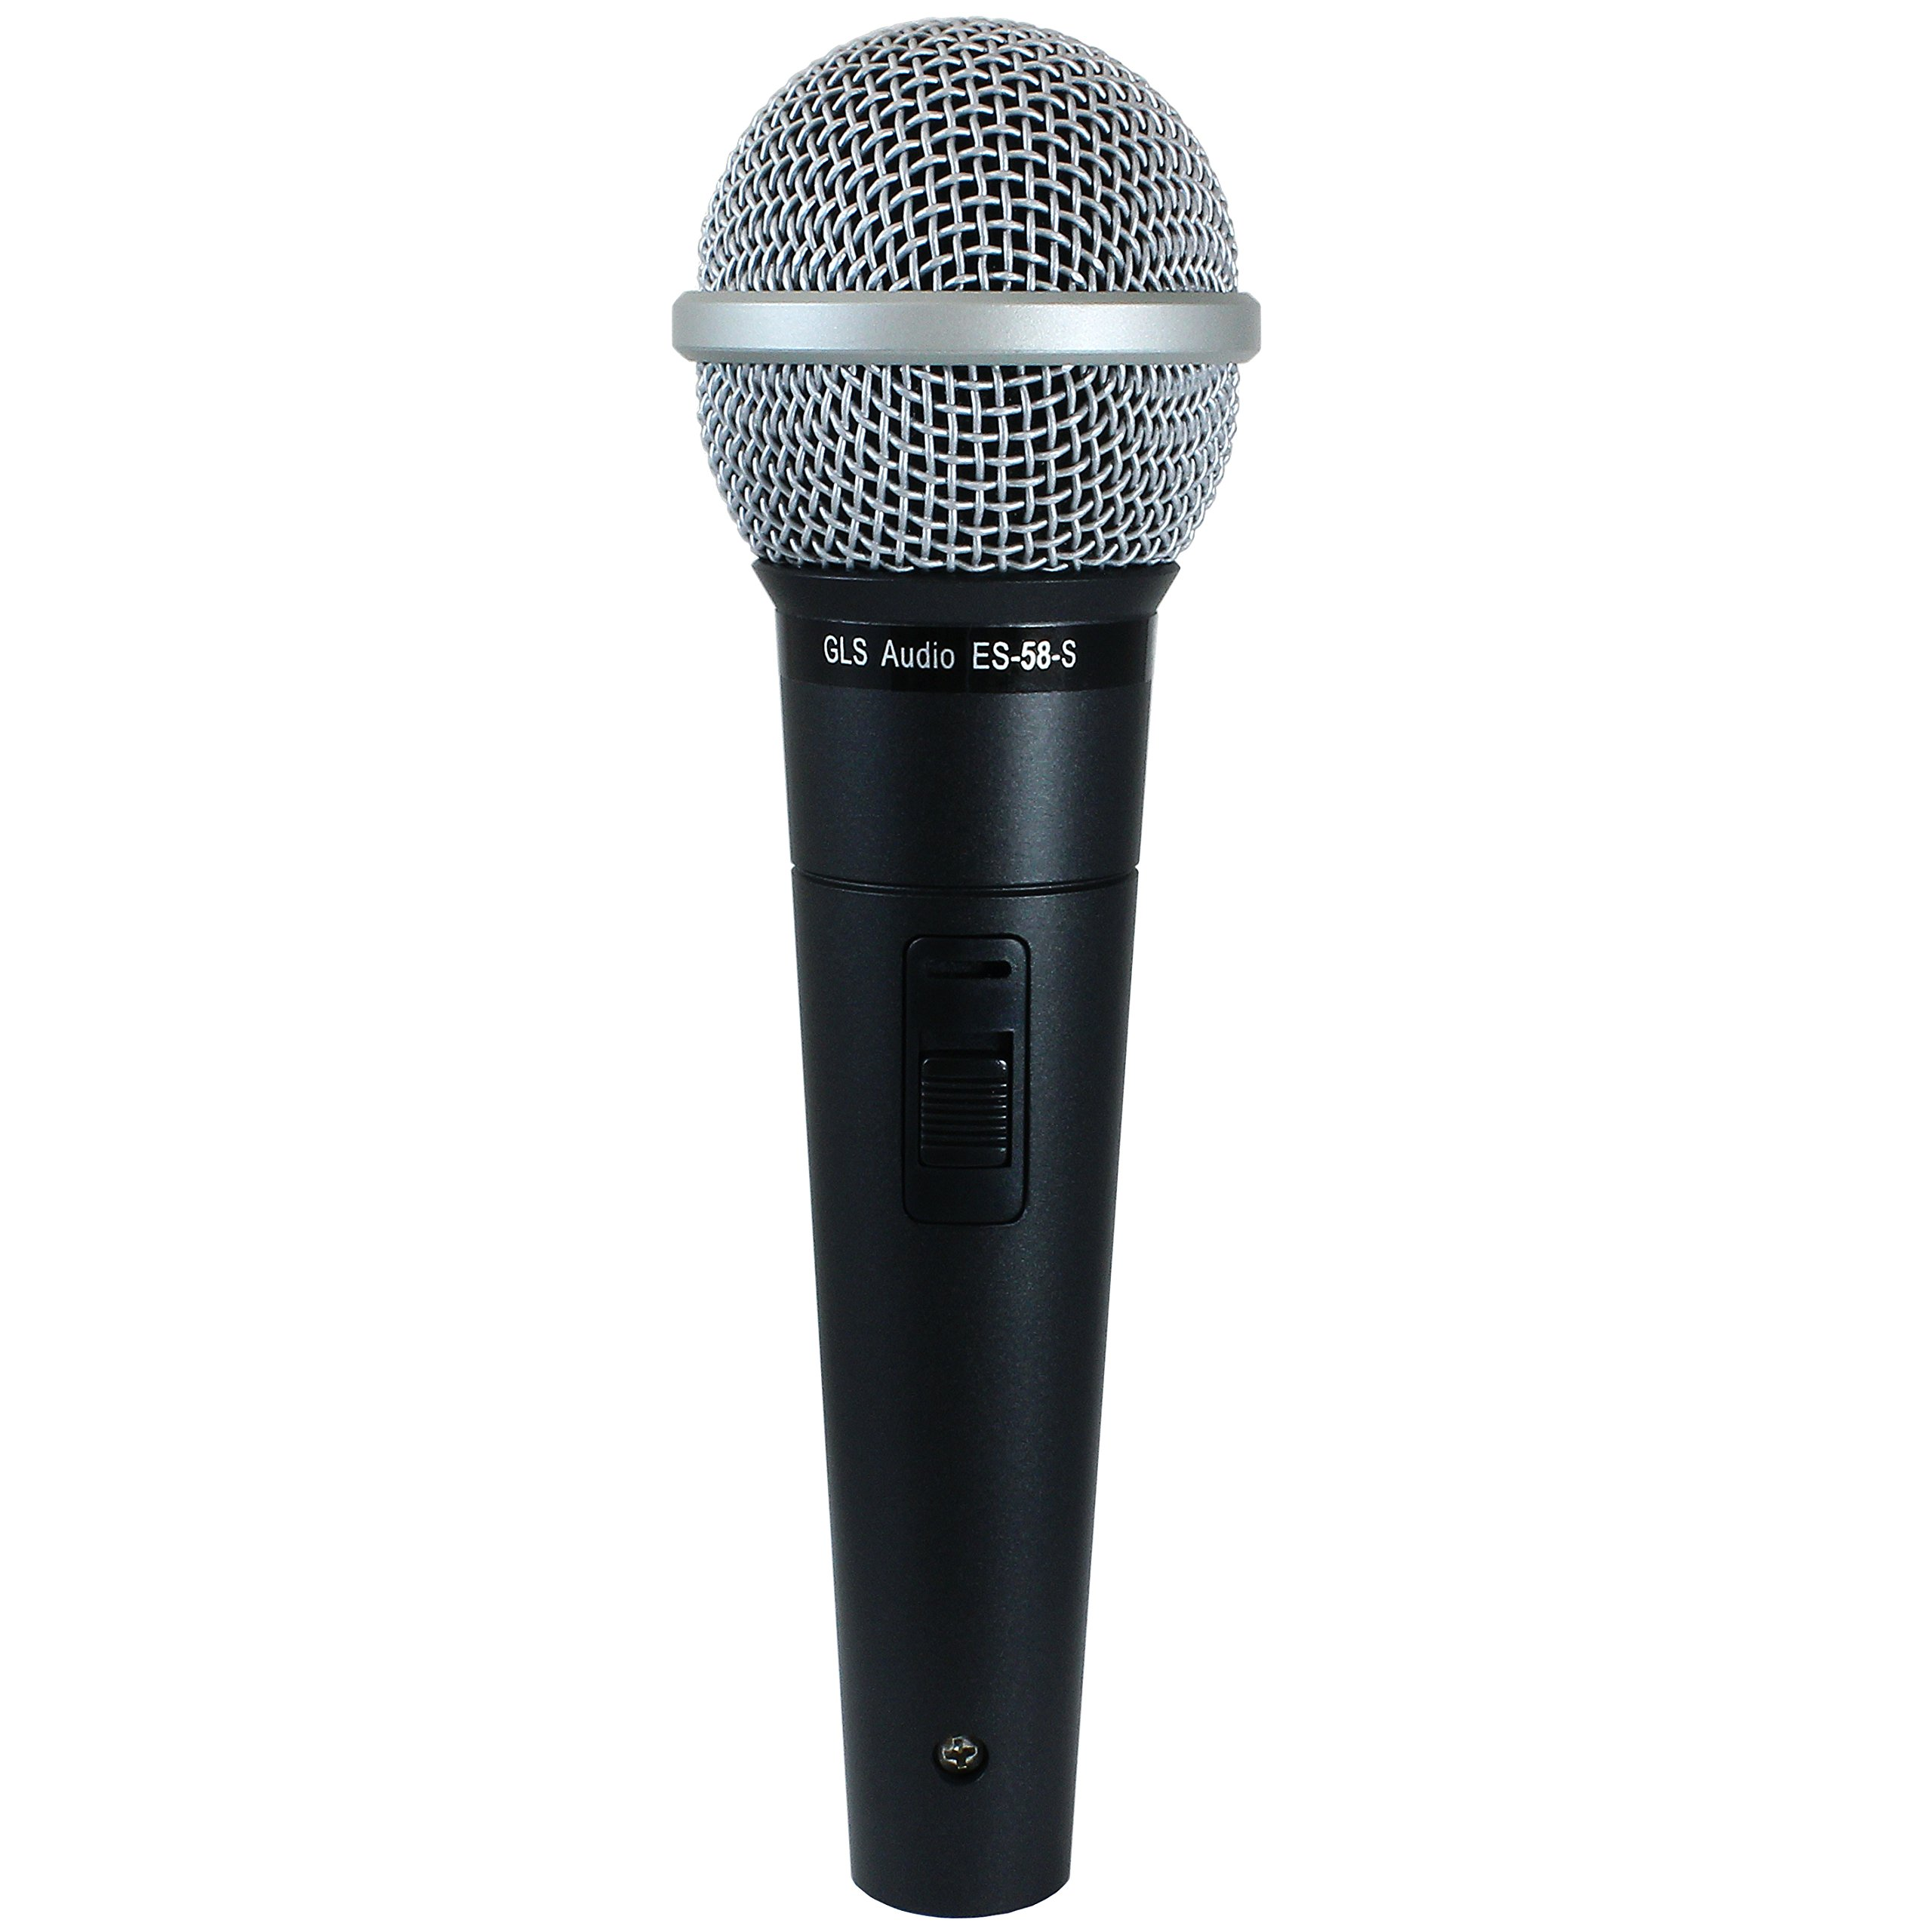 GLS Audio Vocal Microphone ES-58-S & Mic Clip - Professional Series ES58-S Dynamic Cardioid Mike Unidirectional (With On/Off Switch) by GLS Audio